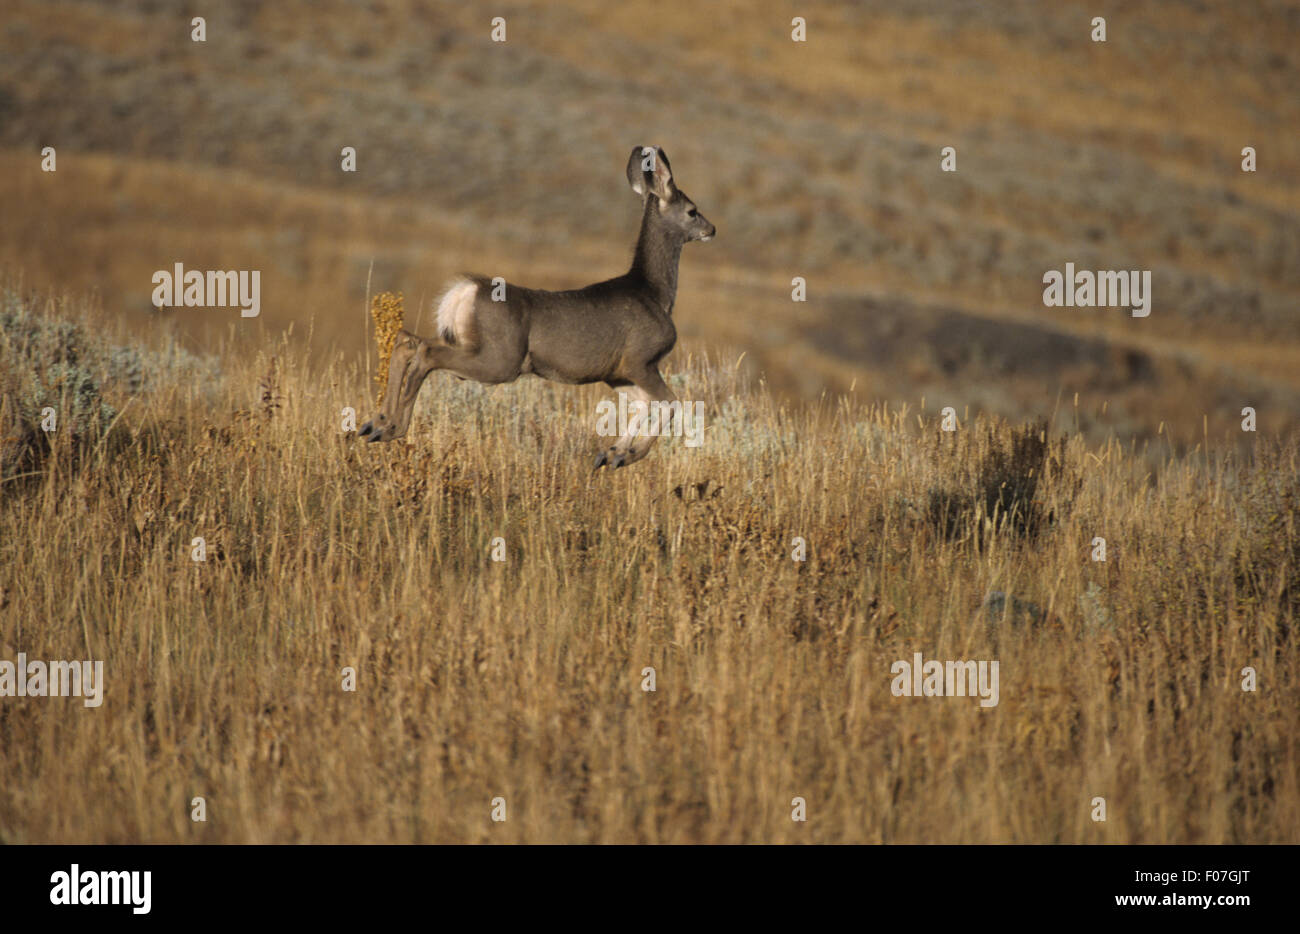 Mule Deer taken in profile pronging leaping through the air to the right  through long grass - Stock Image